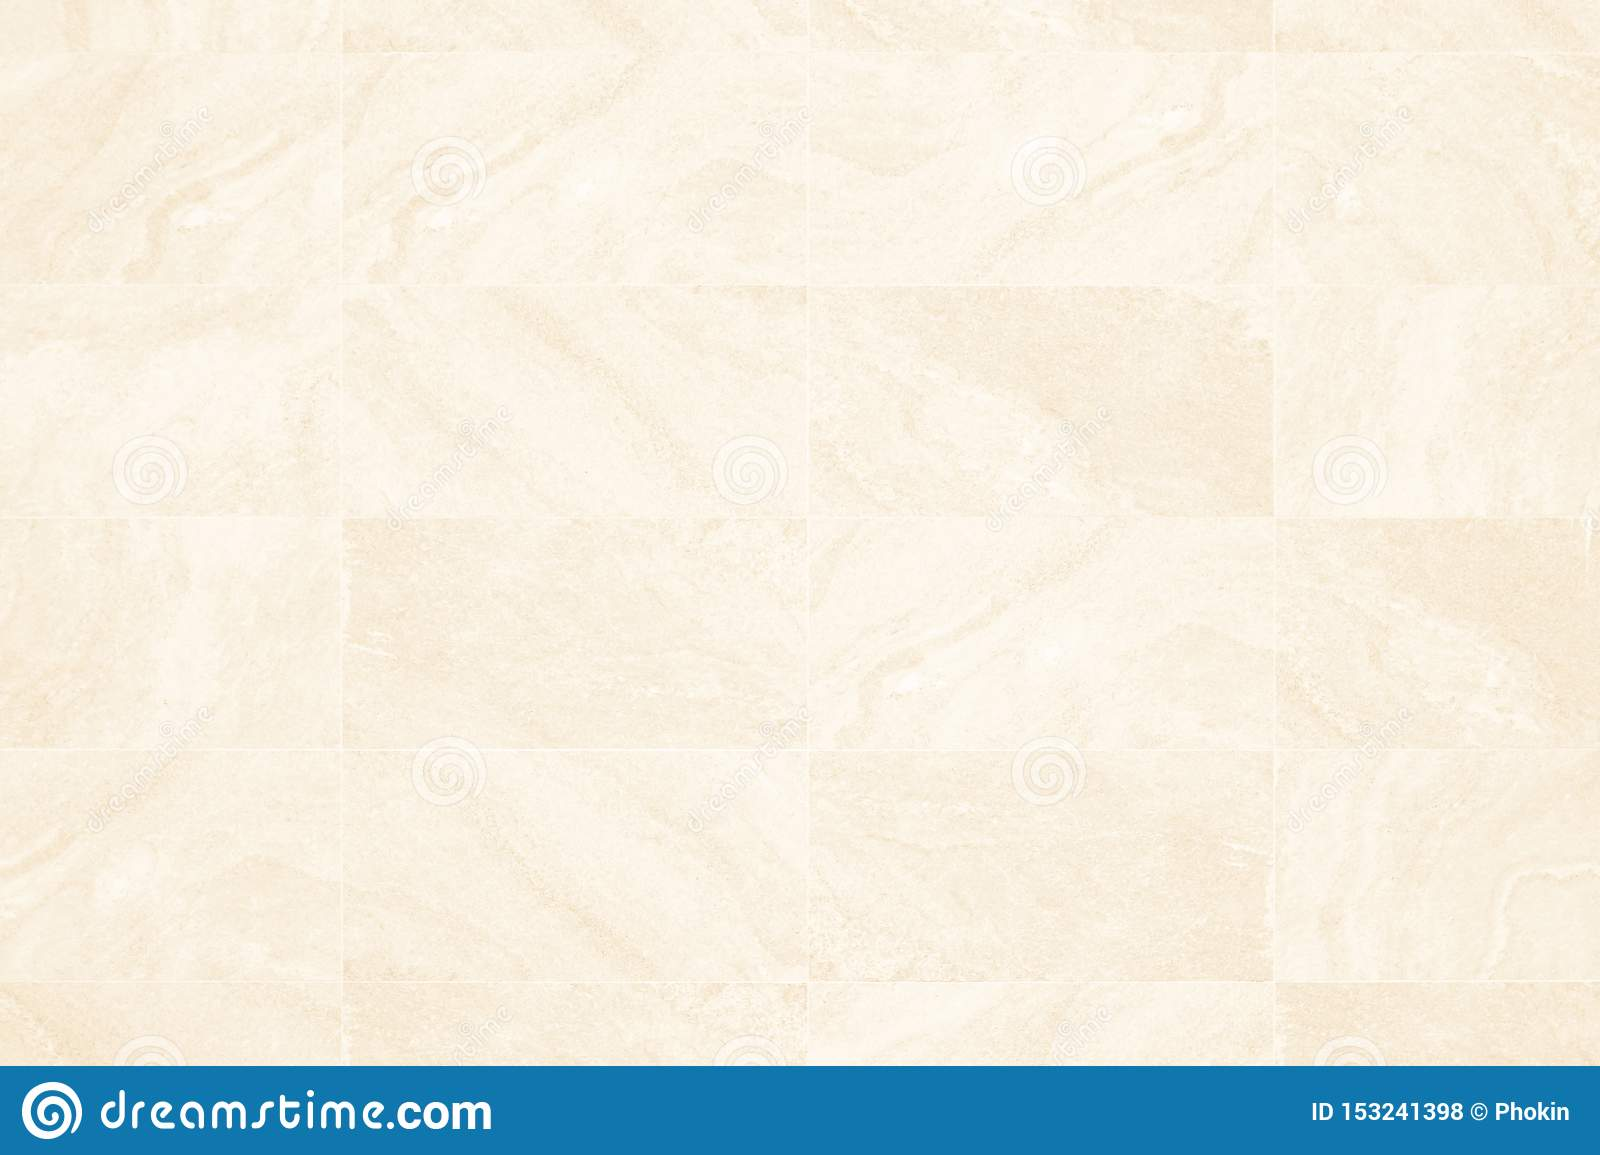 Cream Granite Texture And Background Or Slate Tile Ceramic Seamless Texture Square Light Beige Marble Tiles Seamless Floor Stock Photo Image Of Abandon Aged 153241398